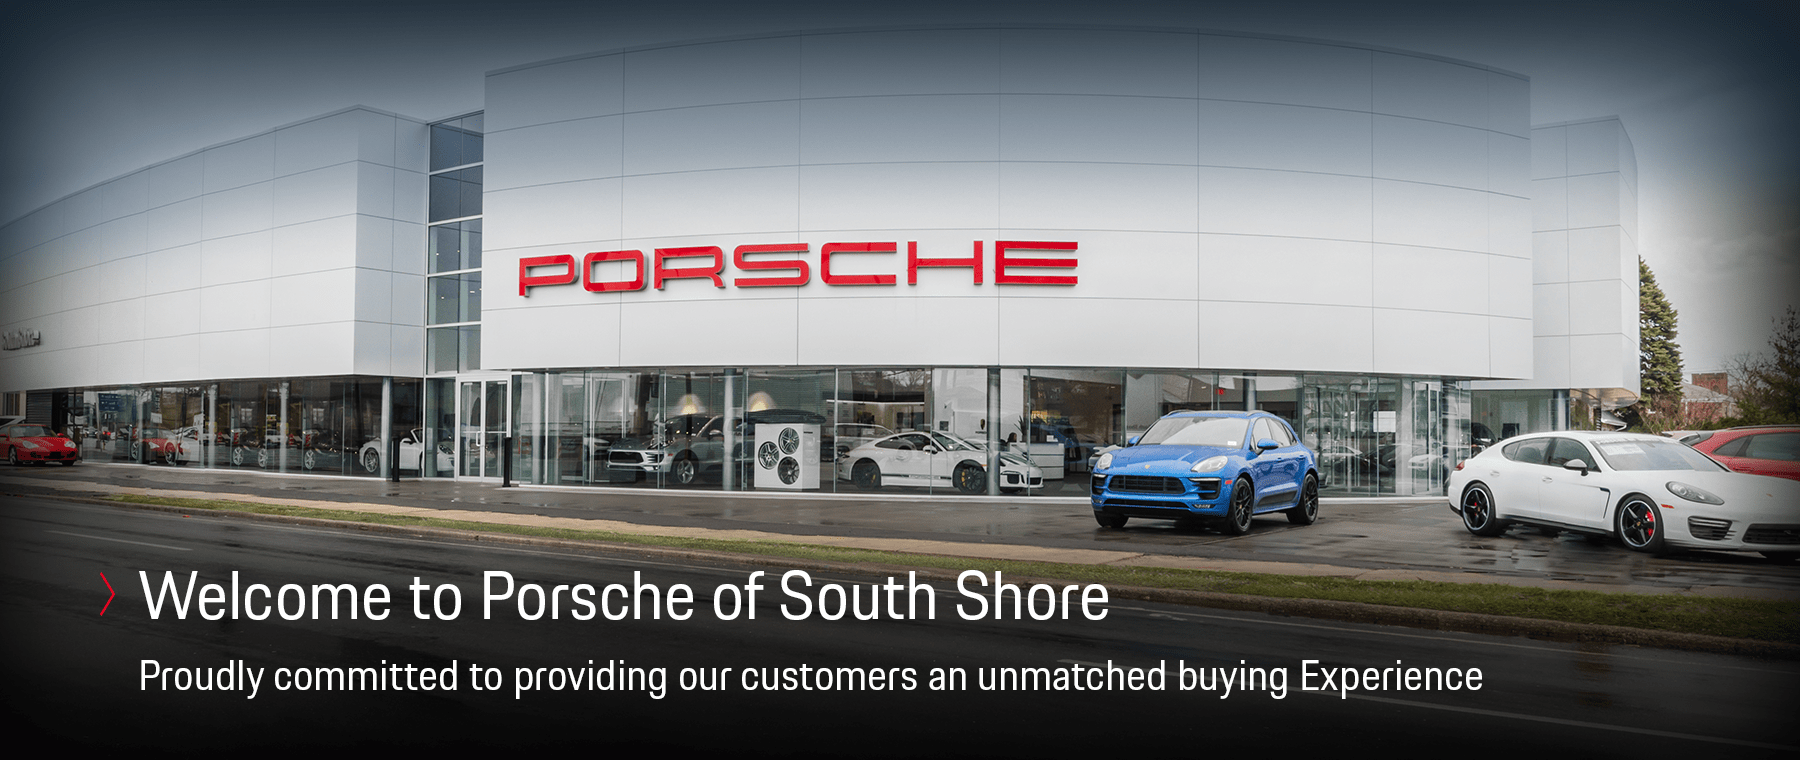 Porsche of South Shore